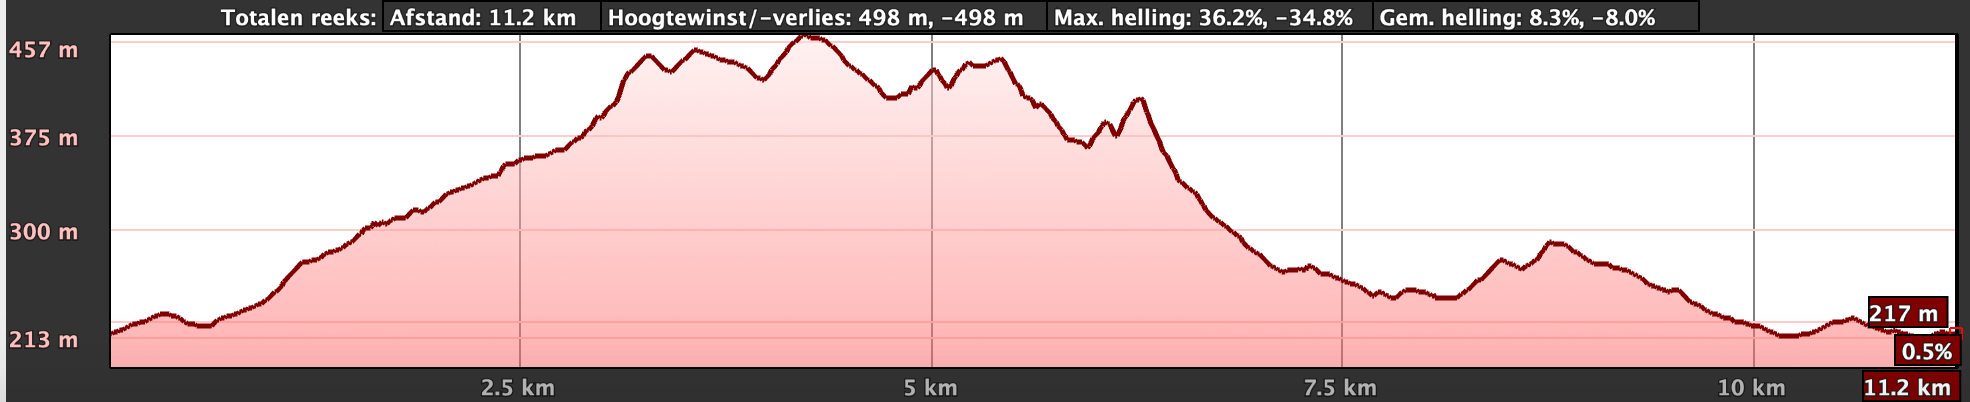 Hayterdale trailrun route 12km elevation